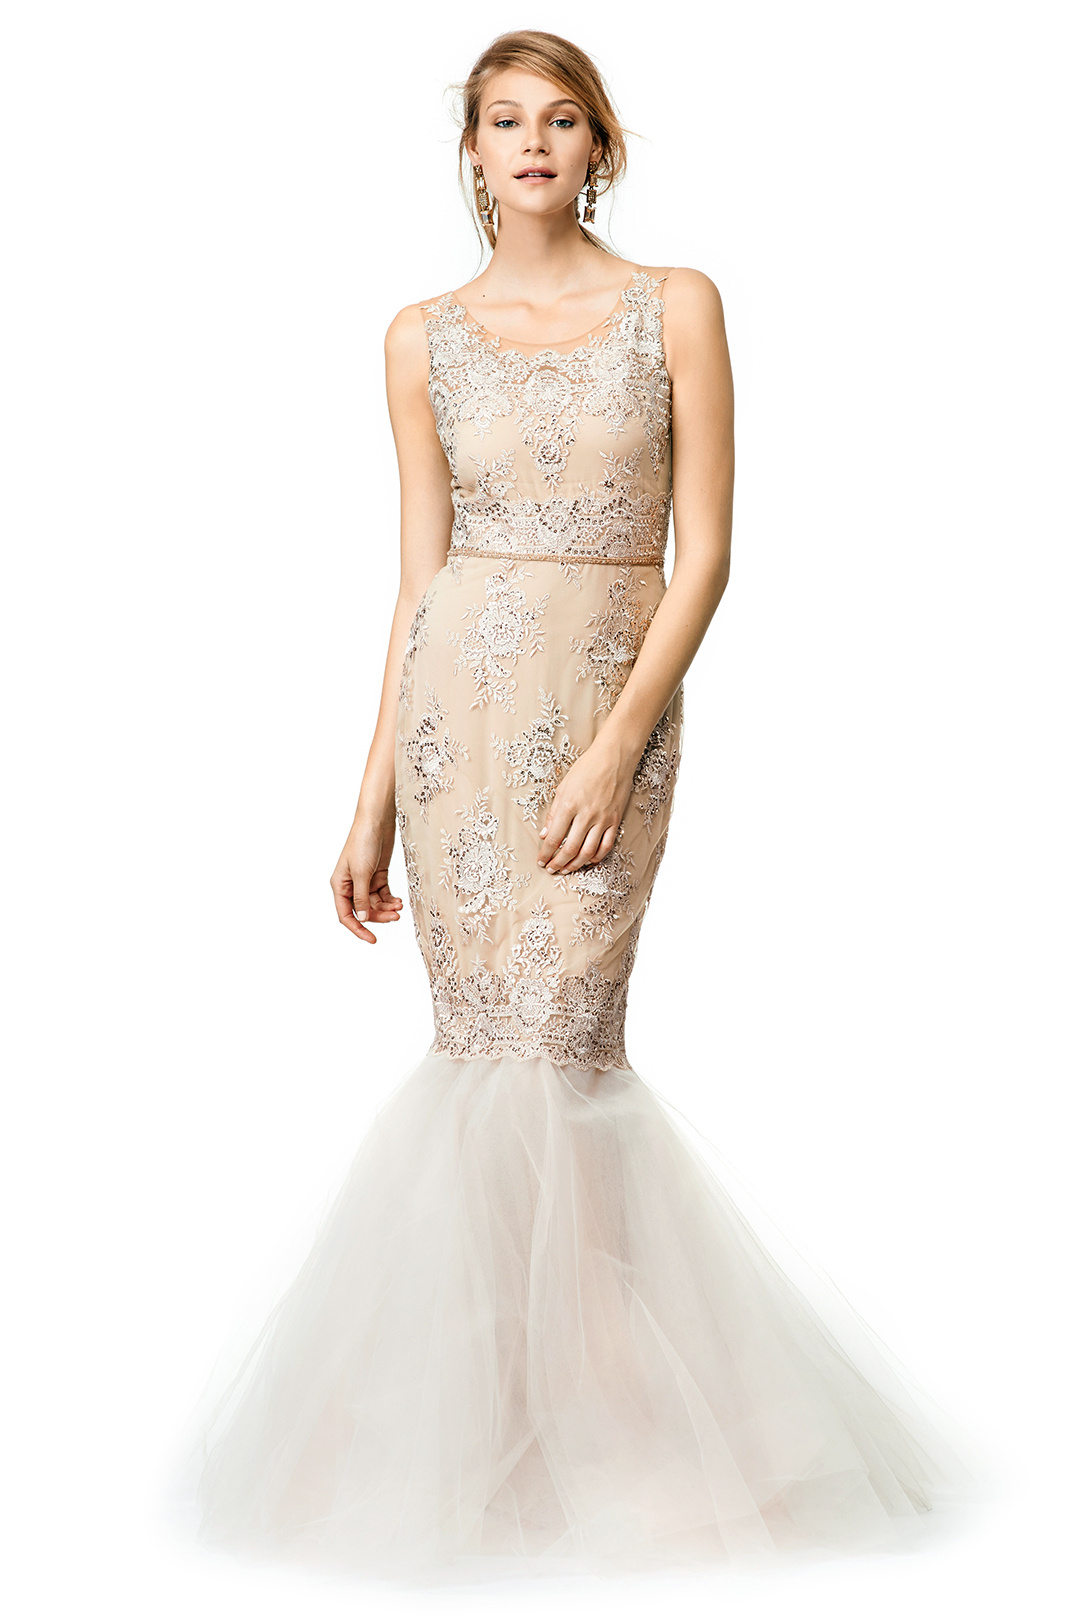 How to find a wedding dress on a budget fashionistabudget for Marchesa wedding dresses prices